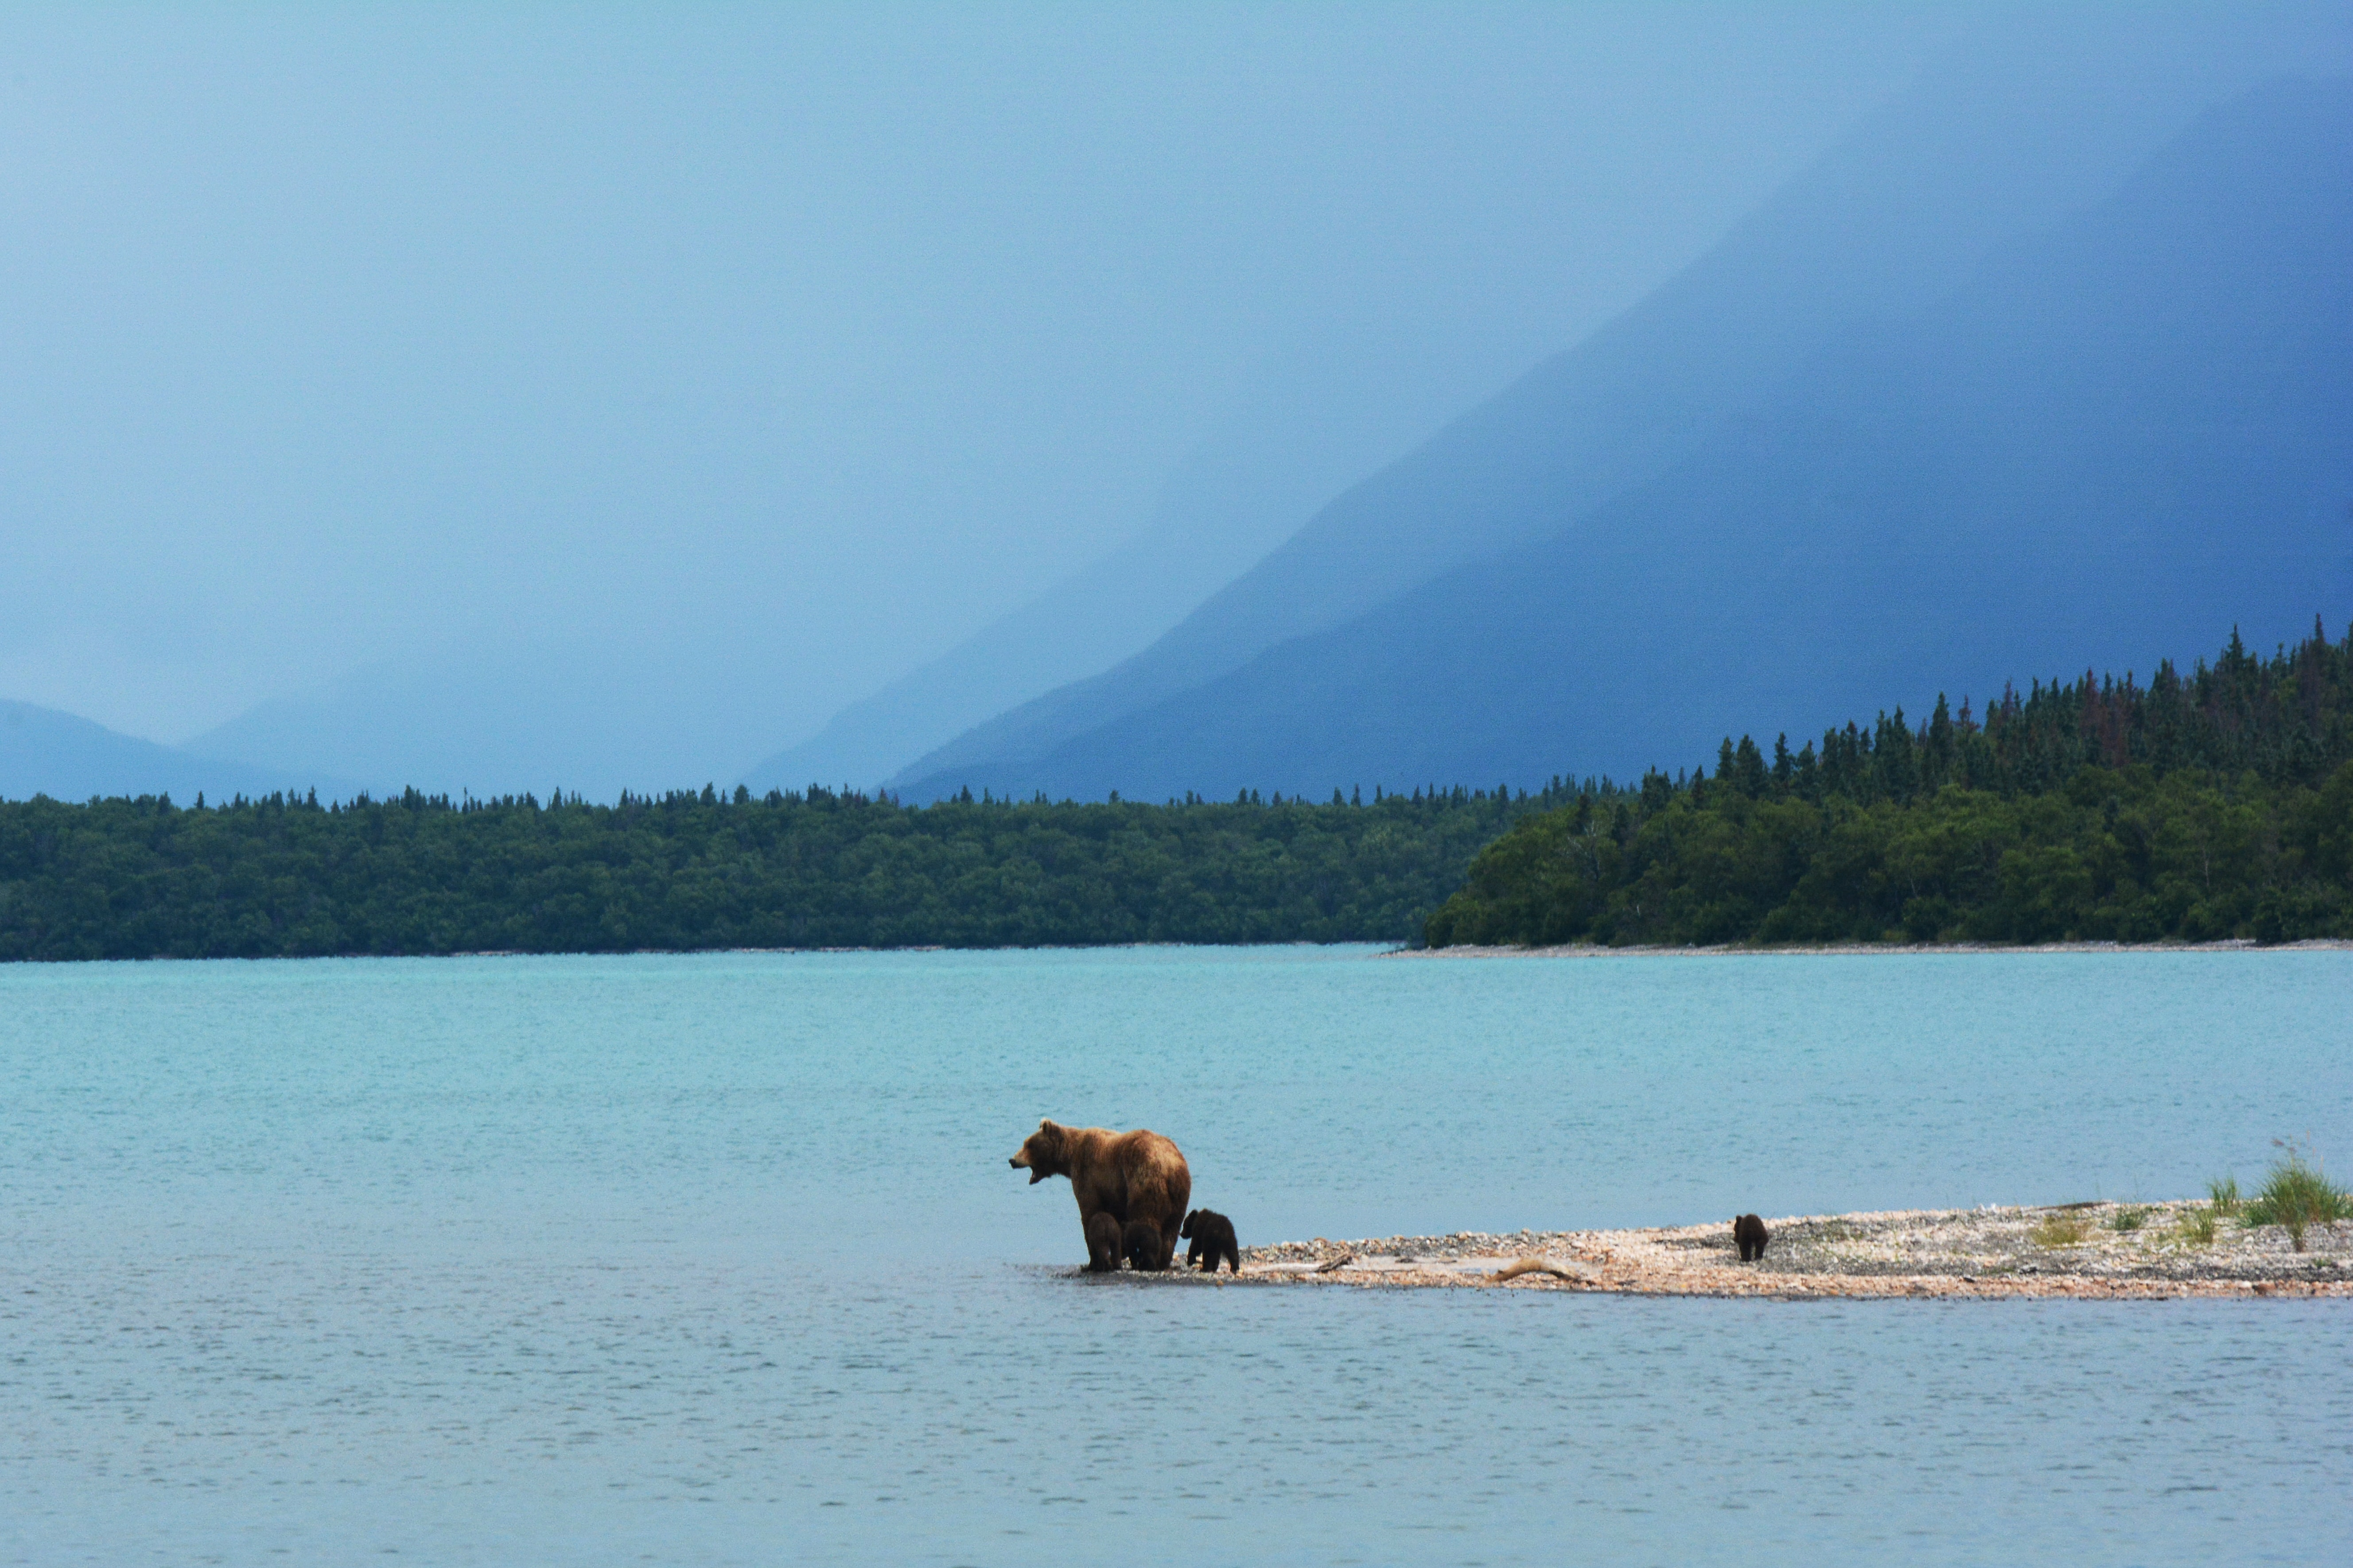 Grizzly Bears on Inlet